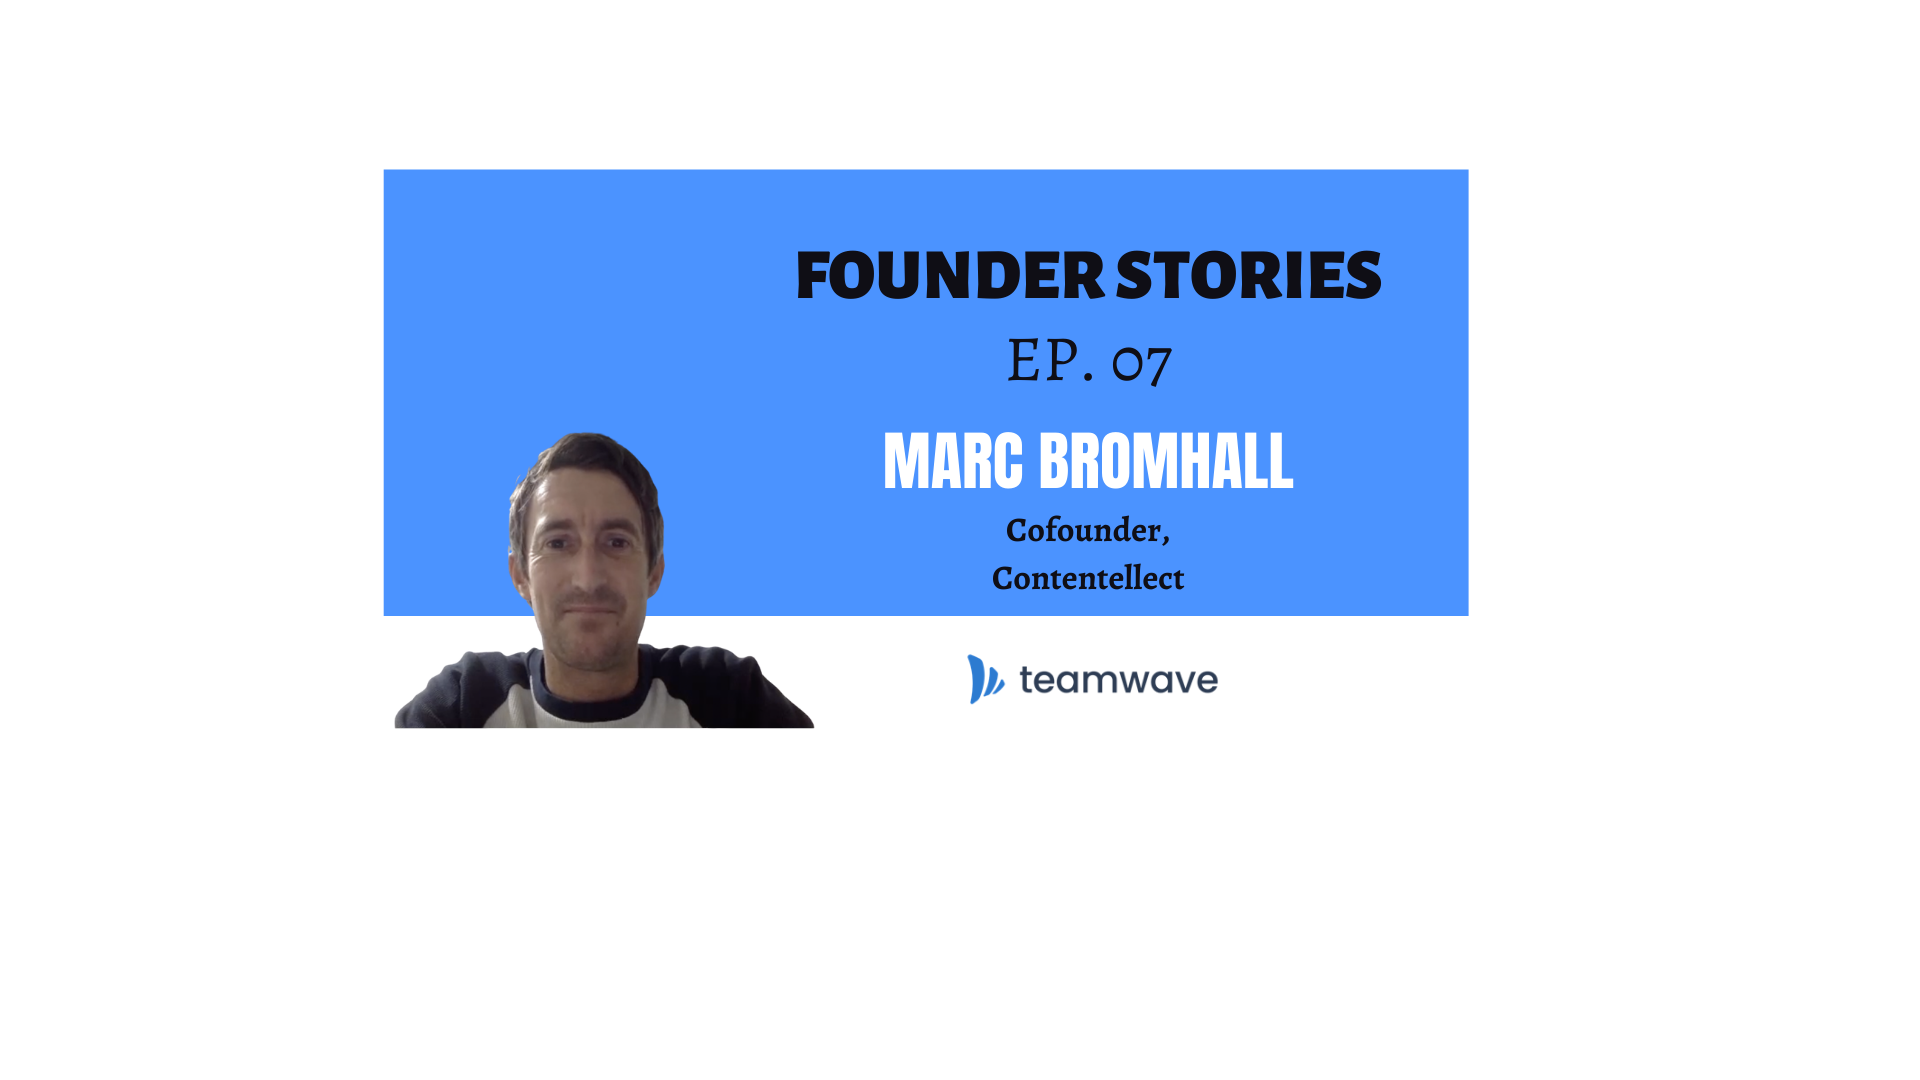 Contentellect (Blog Management for Small Businesses) I CoFounder, Marc Bromhall